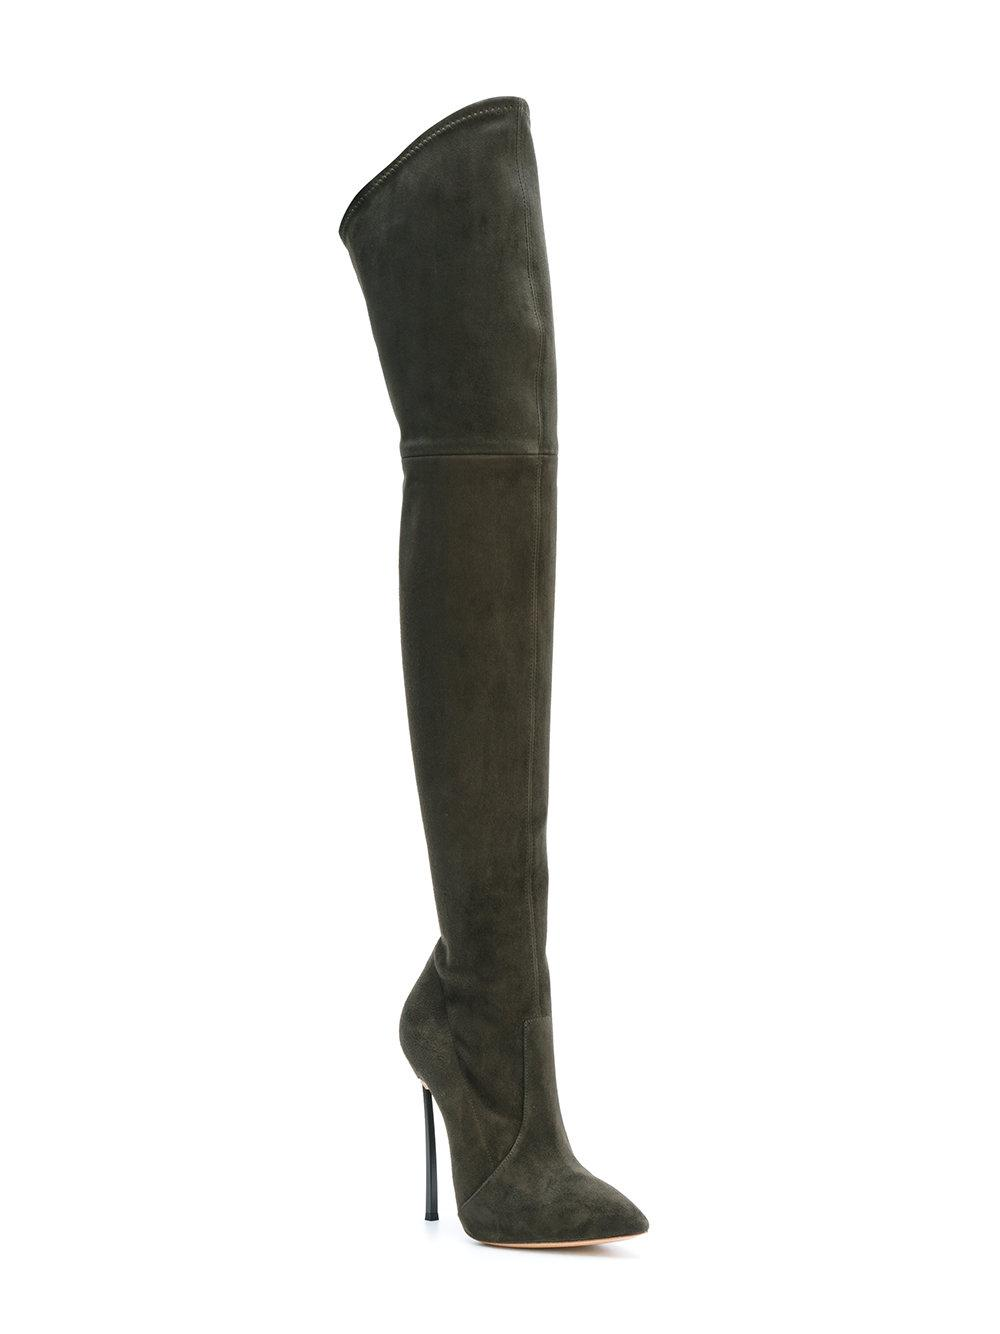 Casadei Suede Over-the-knee Blade Boots in Green